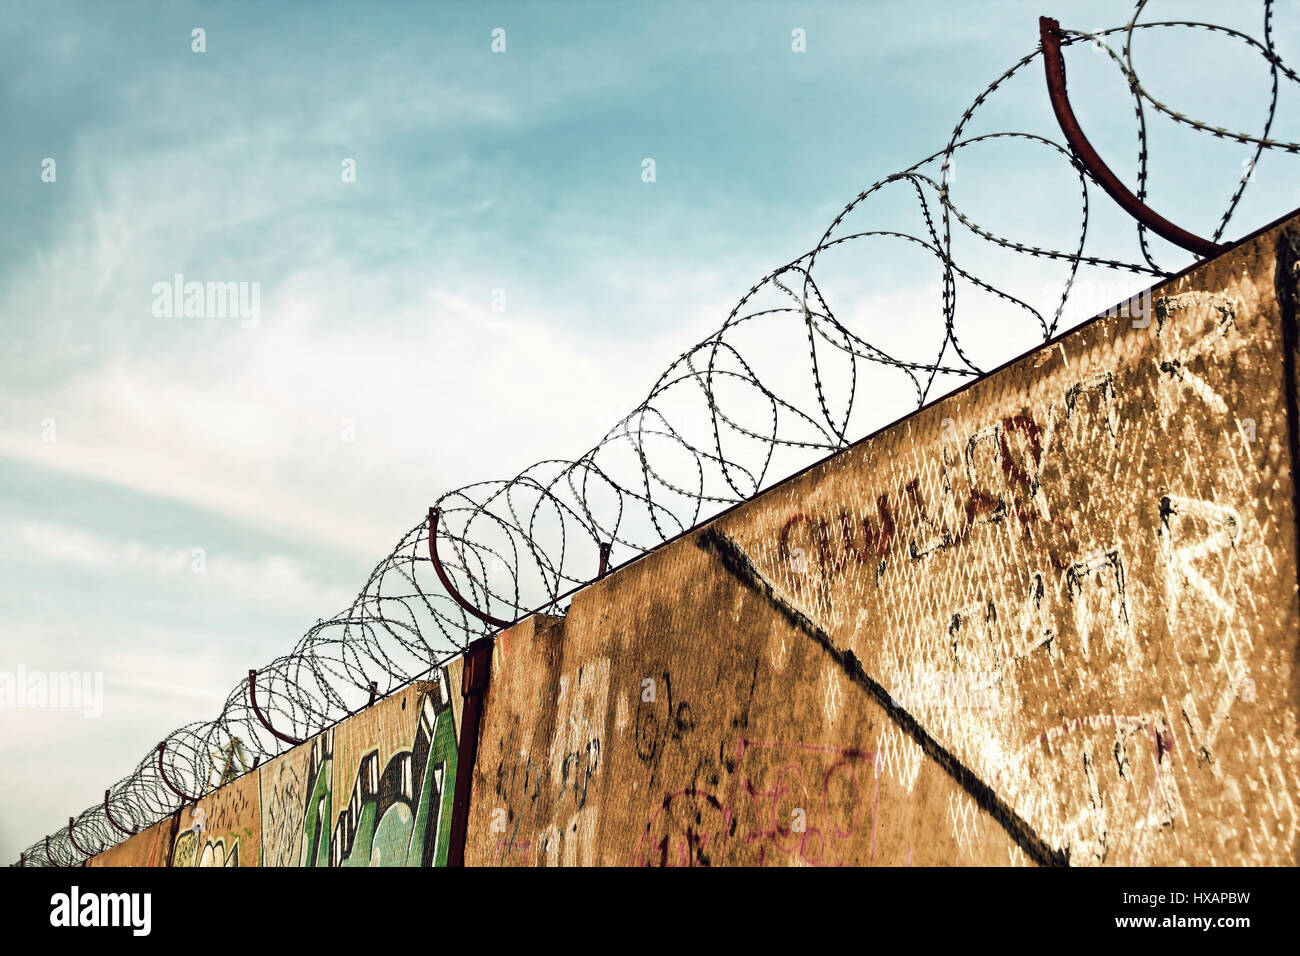 Barbed wire fence detail against of the blue sky taken closeup.Toned image. - Stock Image